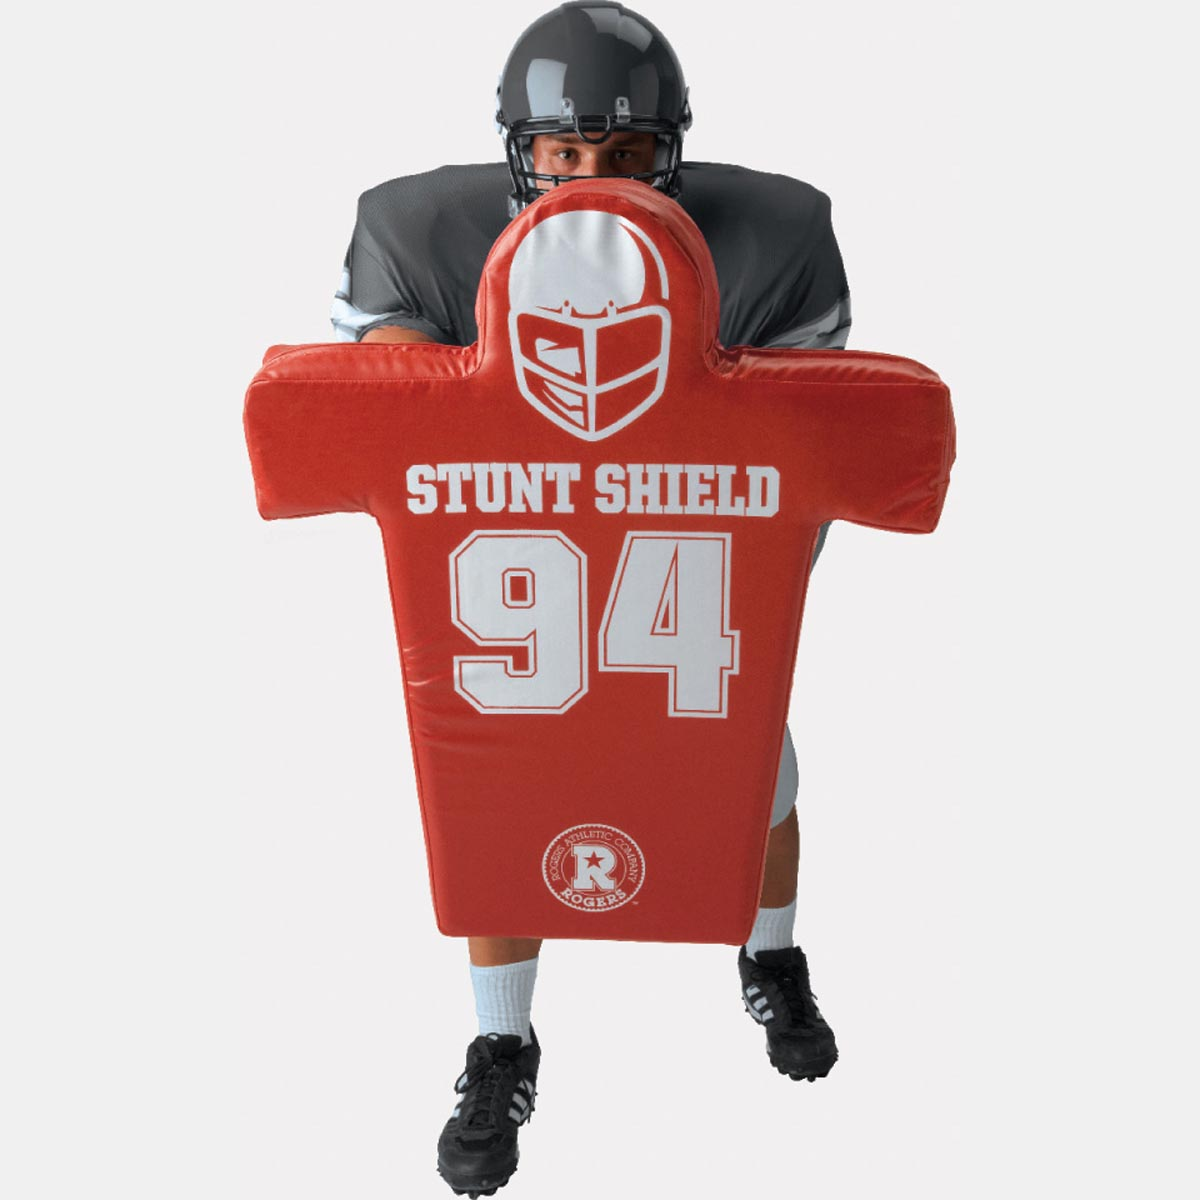 football shields - stunt shield